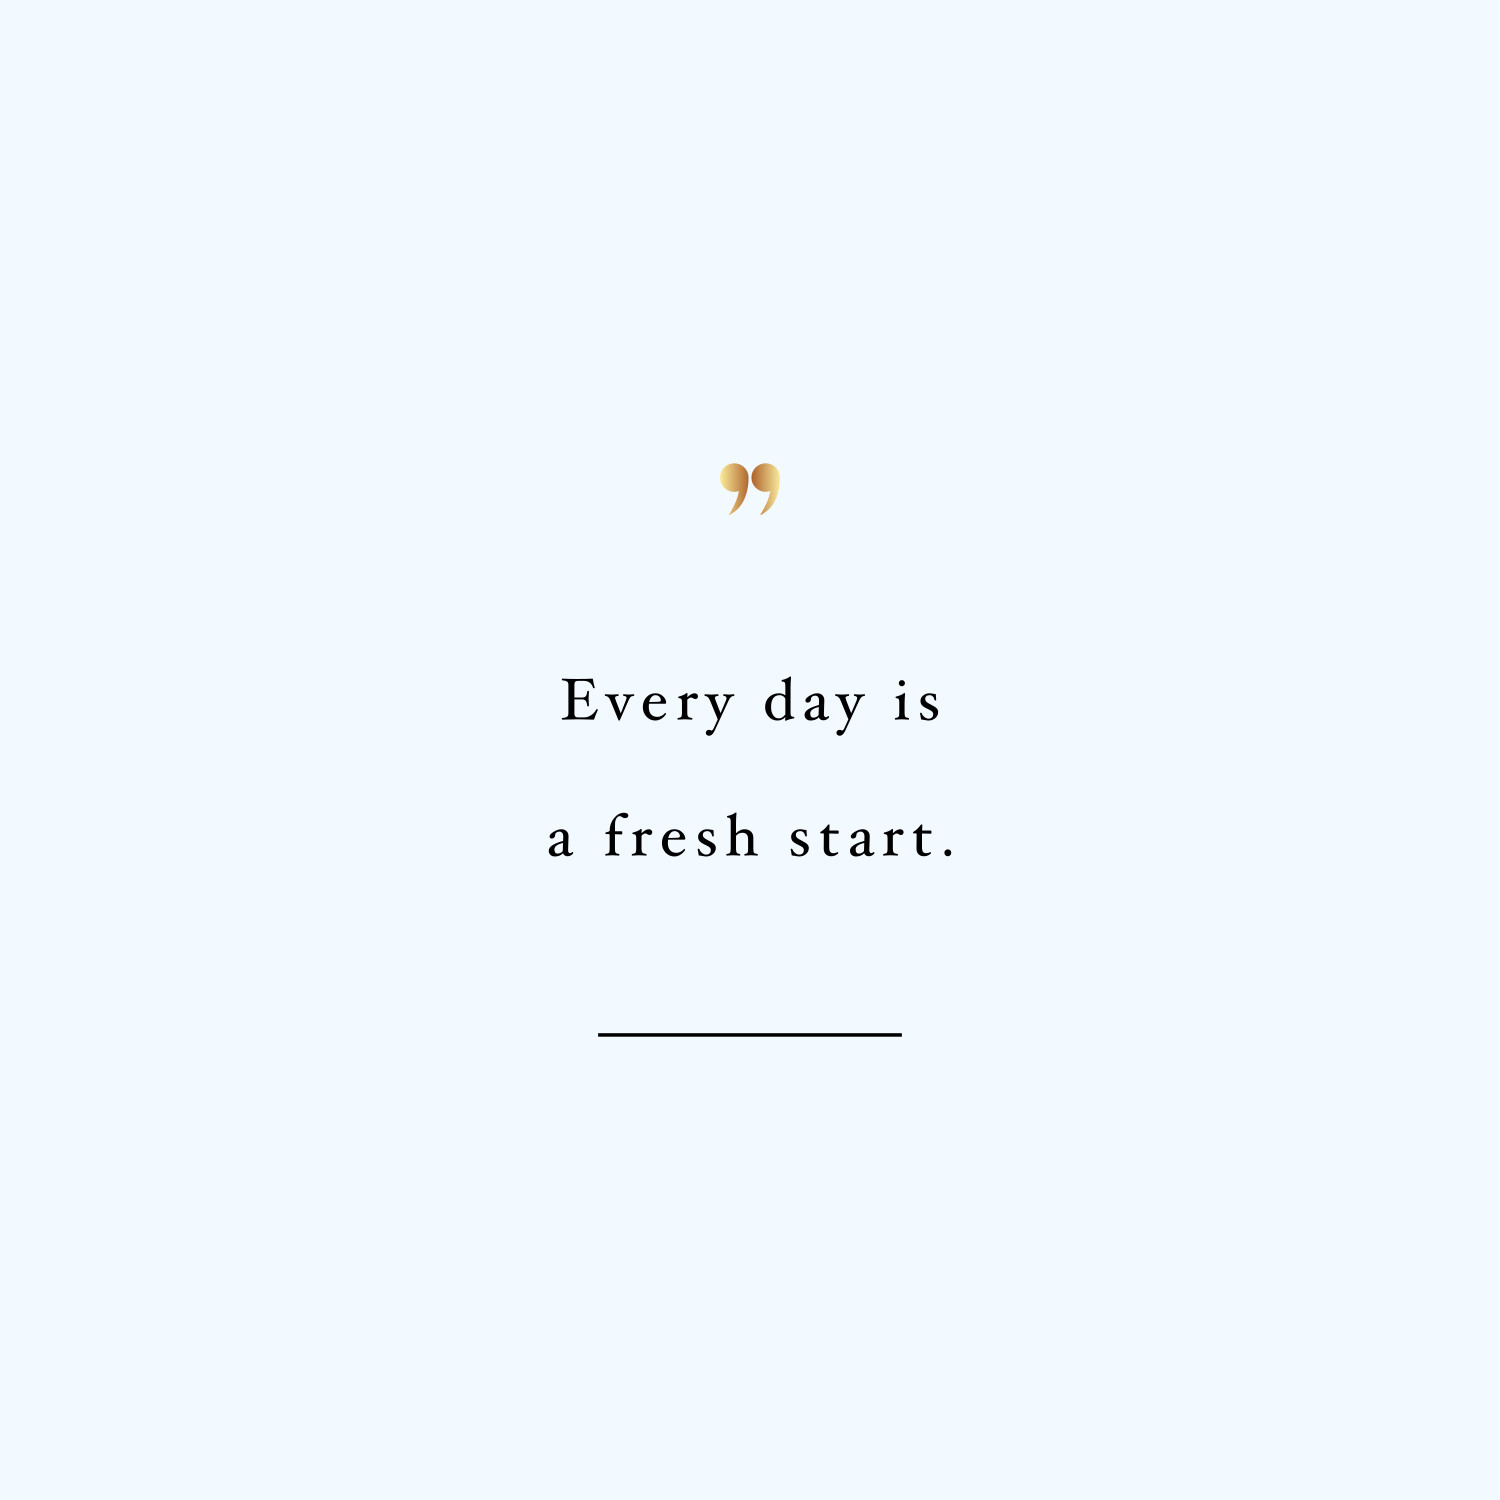 Fresh start! Browse our collection of inspirational fitness and weight loss quotes and get instant exercise and training motivation. Transform positive thoughts into positive actions and get fit, healthy and happy! https://www.spotebi.com/workout-motivation/fresh-start/